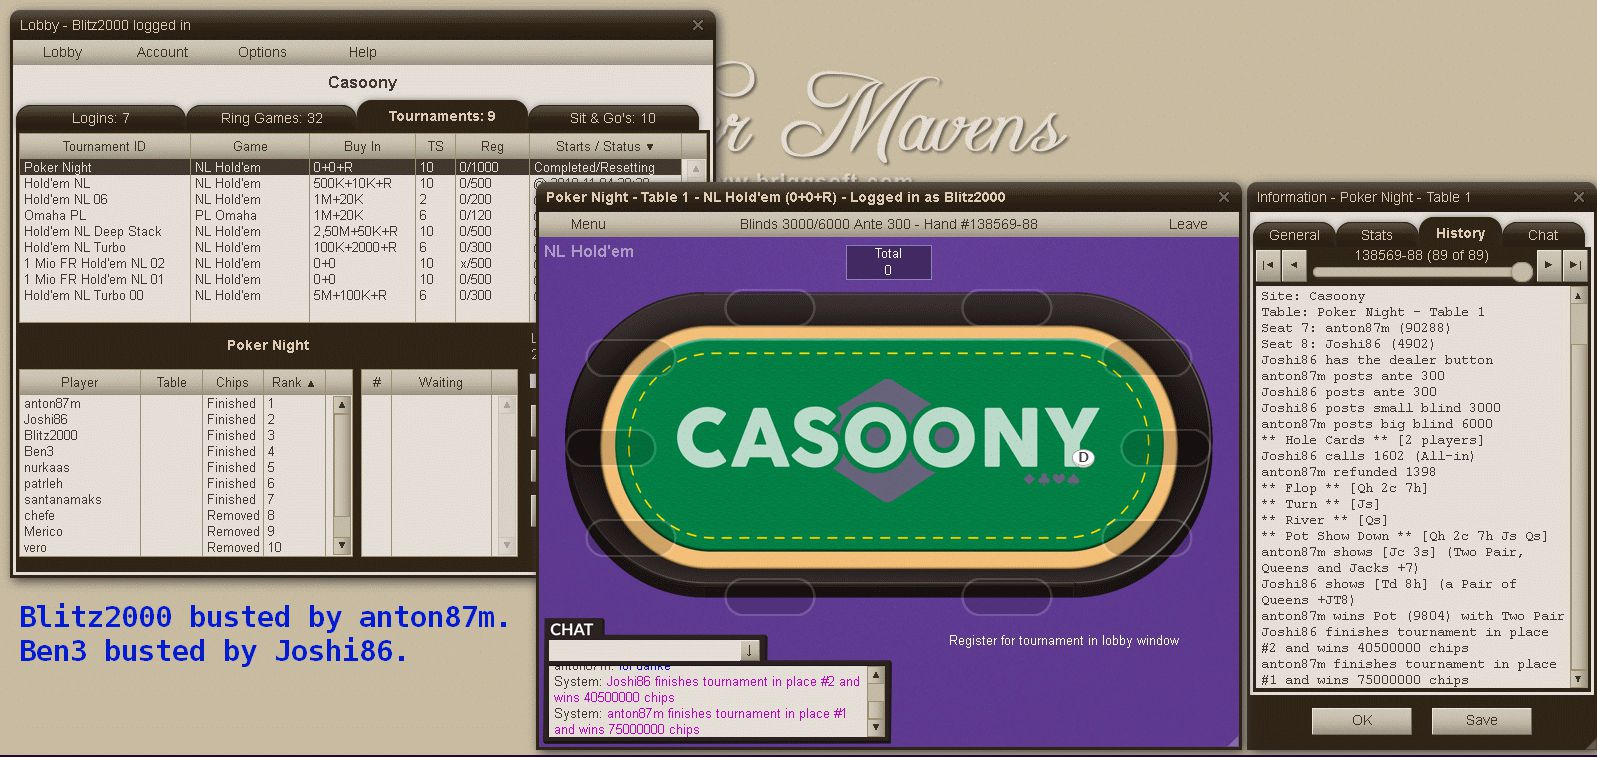 Casoony_Poker_Lobby-PokerNight_20191103_2129_3RDPLACE_SHOW.gif